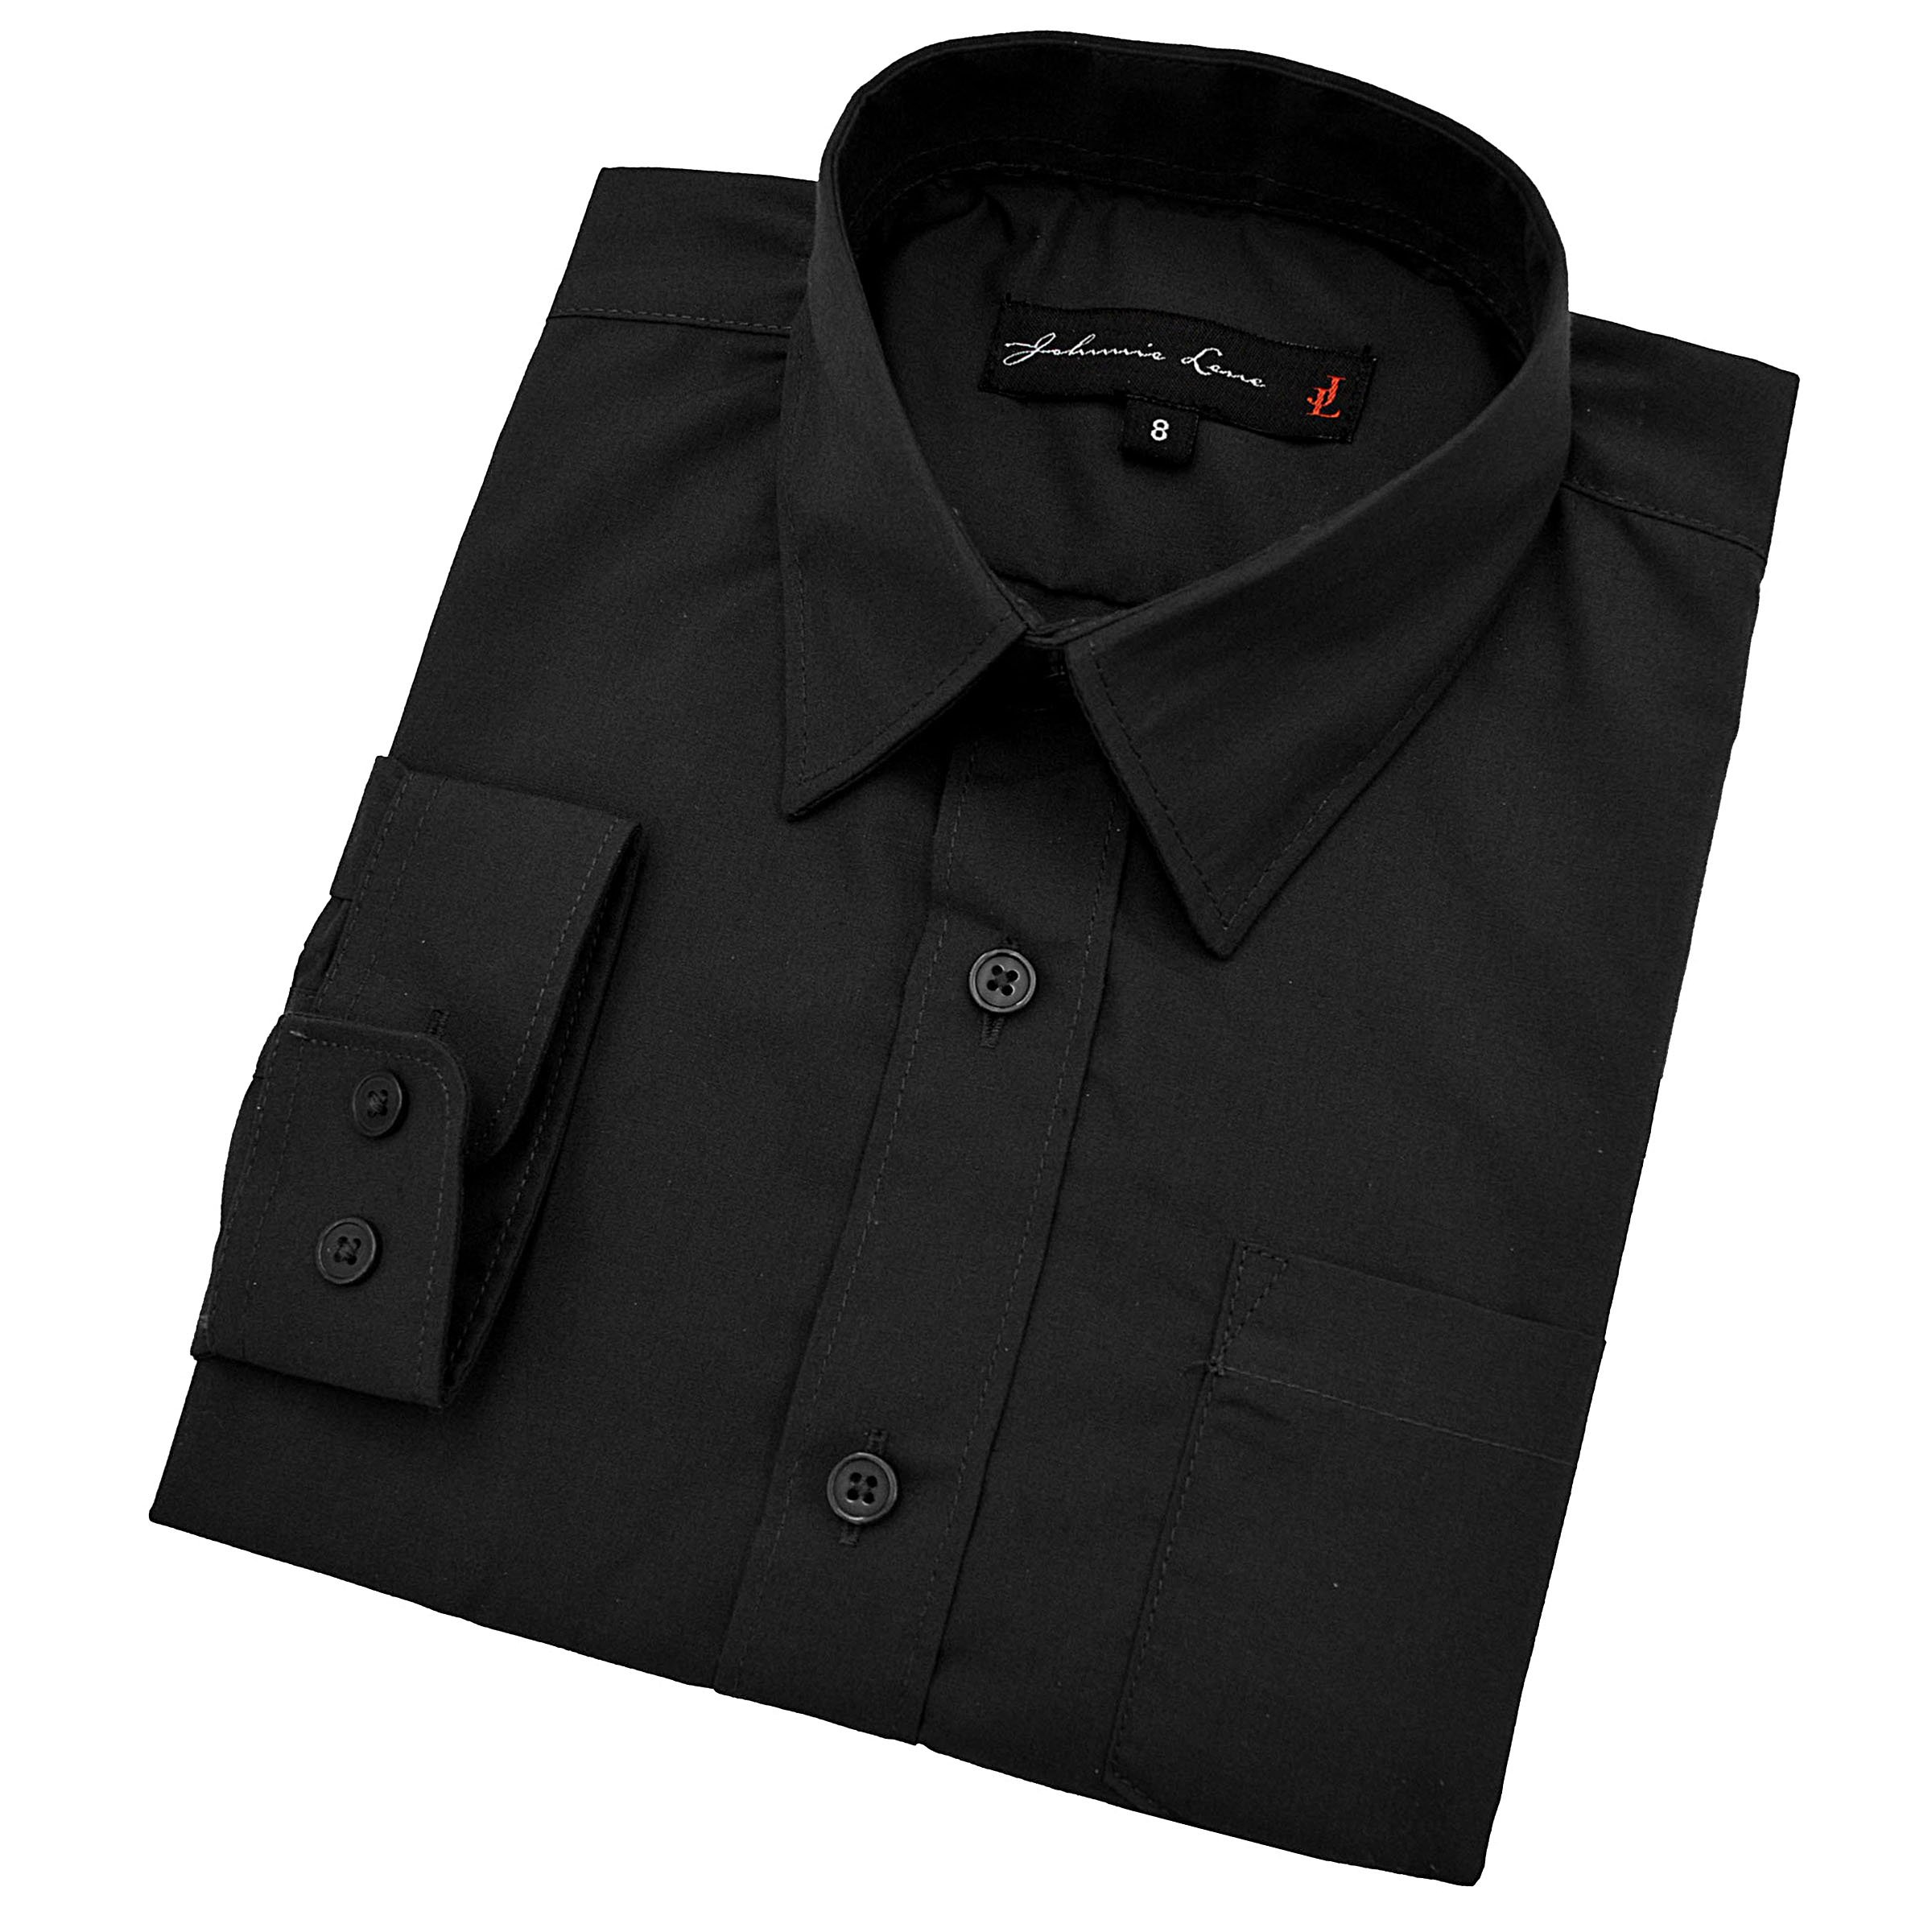 Little Boy's Long Sleeves Solid Dress Shirt #JL32 (3T, Black)